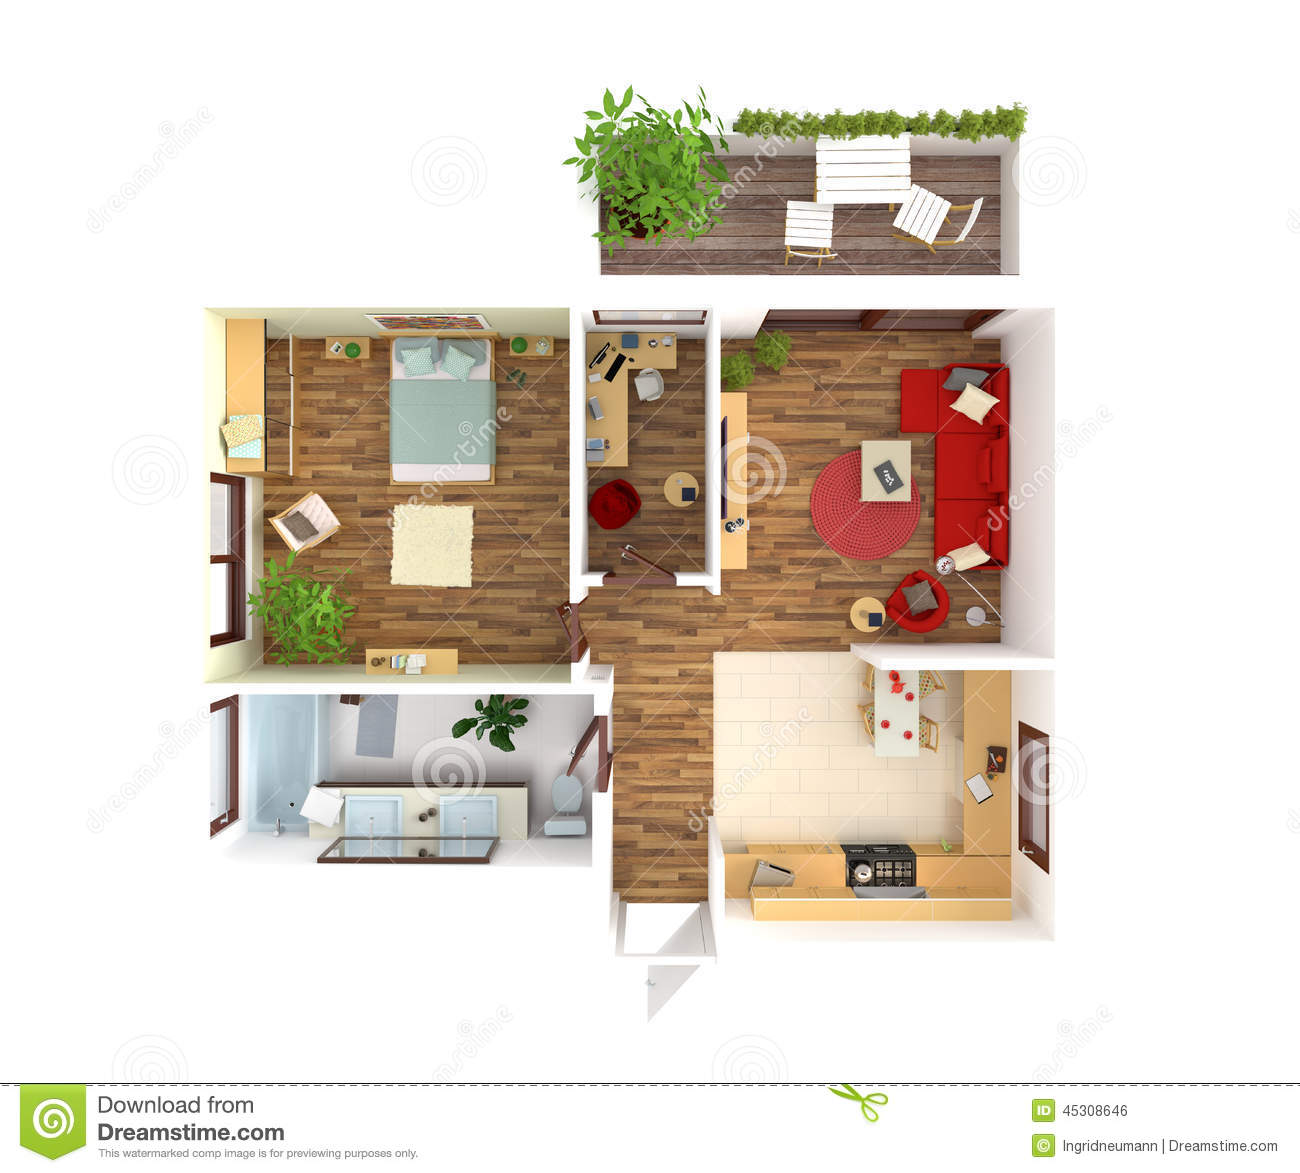 House Plan Top View Interior Design Stock Illustration Image 45308646